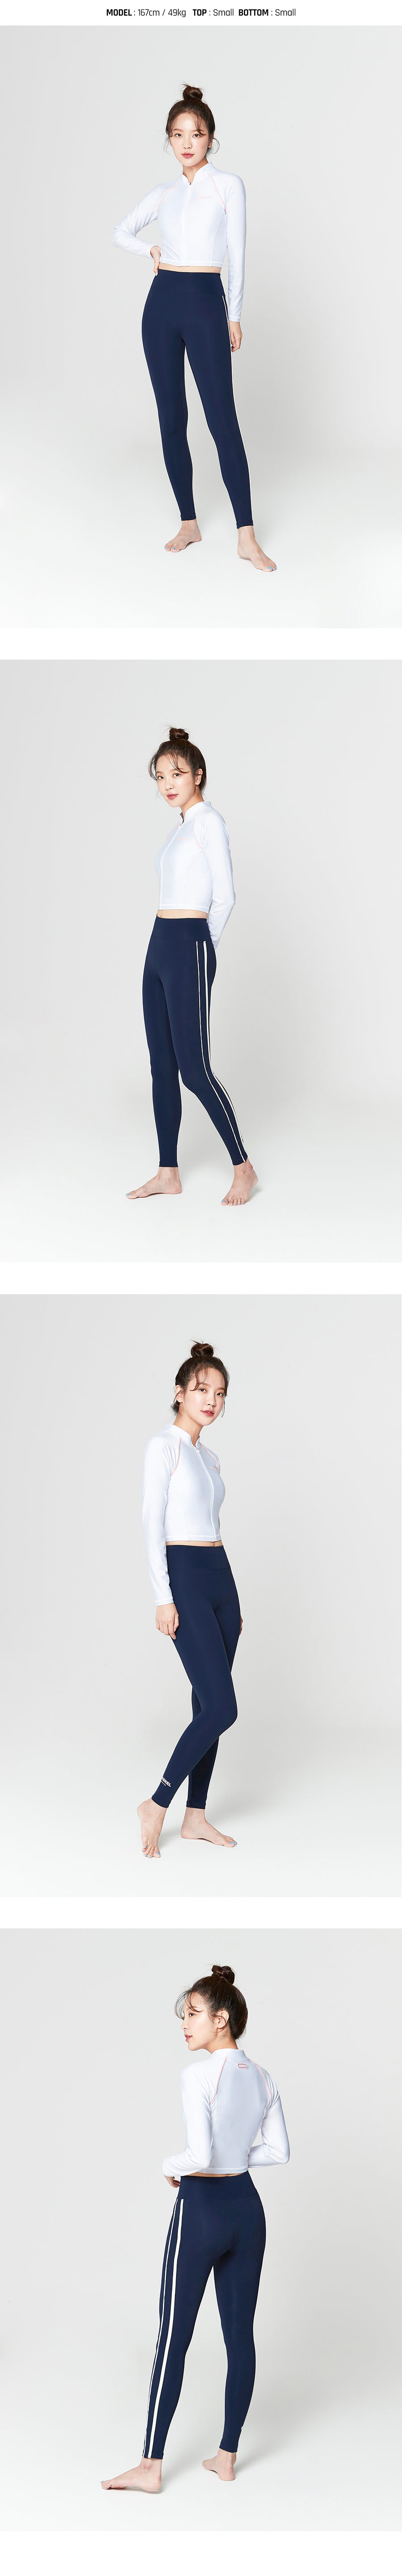 Barrel Womens Joy Water Leggings-DEEP NAVY_image1